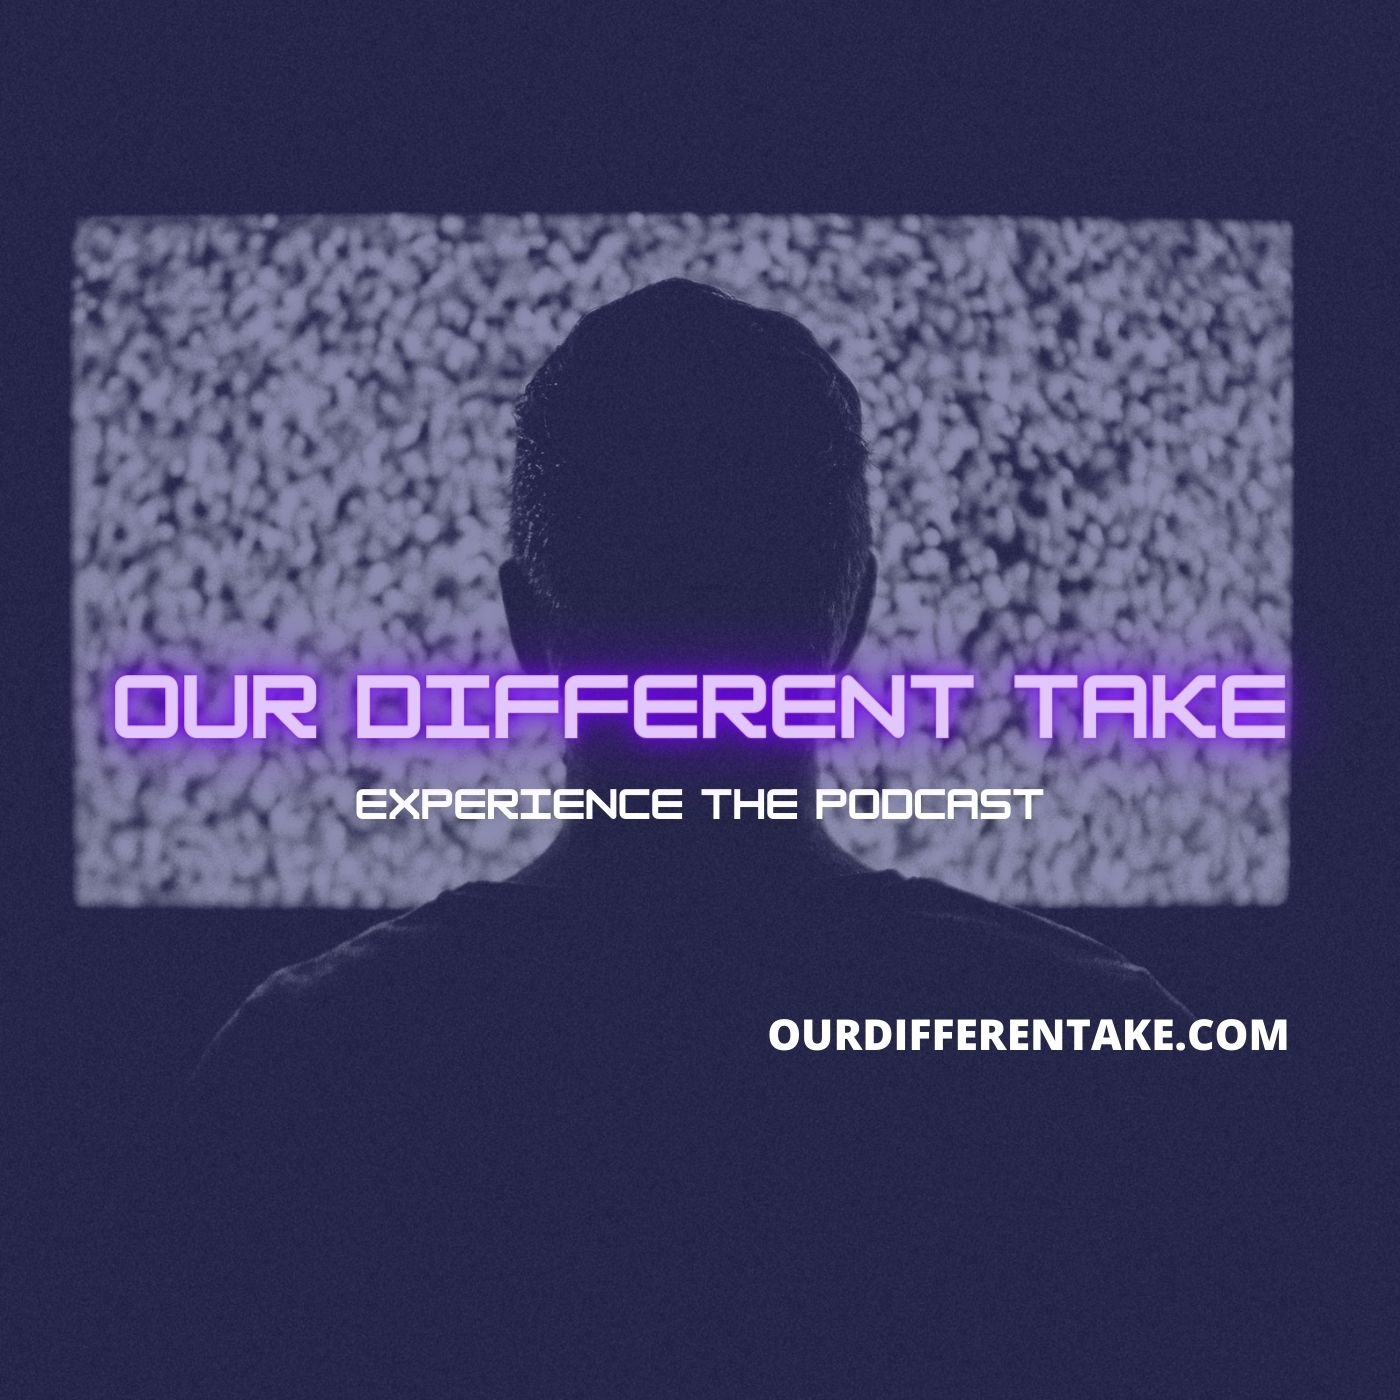 Our Different Take